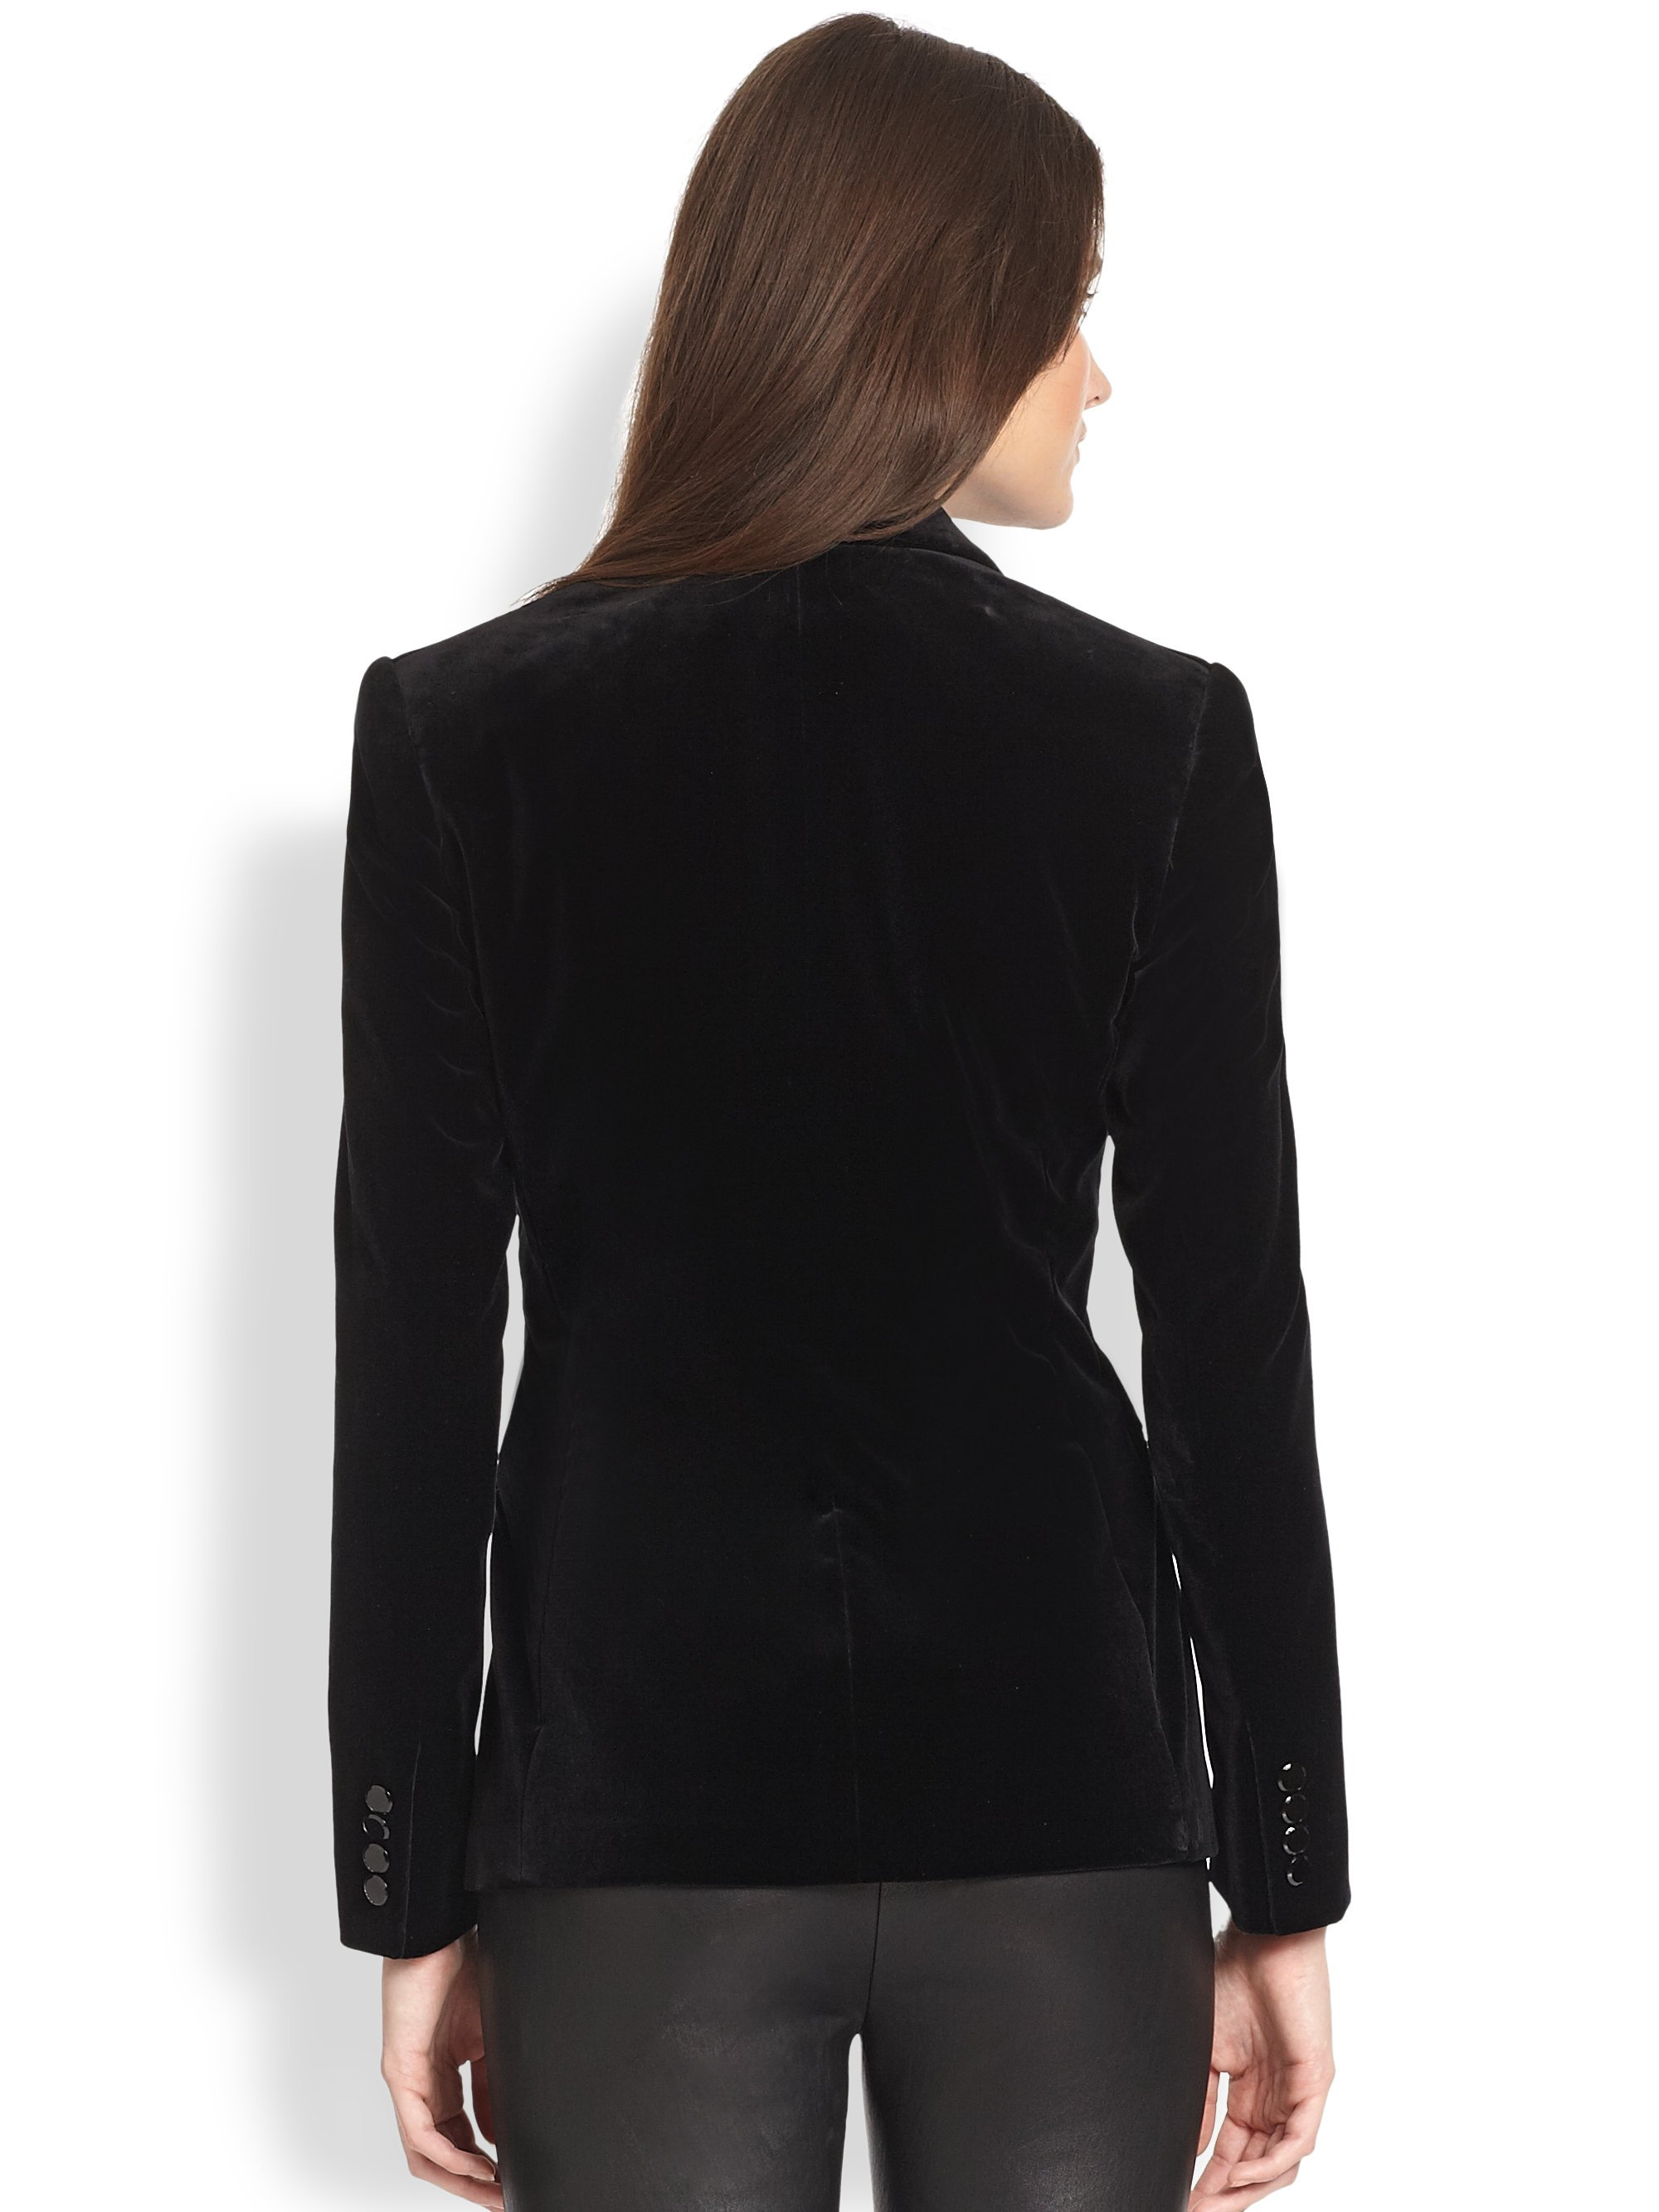 Black satin bomber jacket with embroidered patches 001984